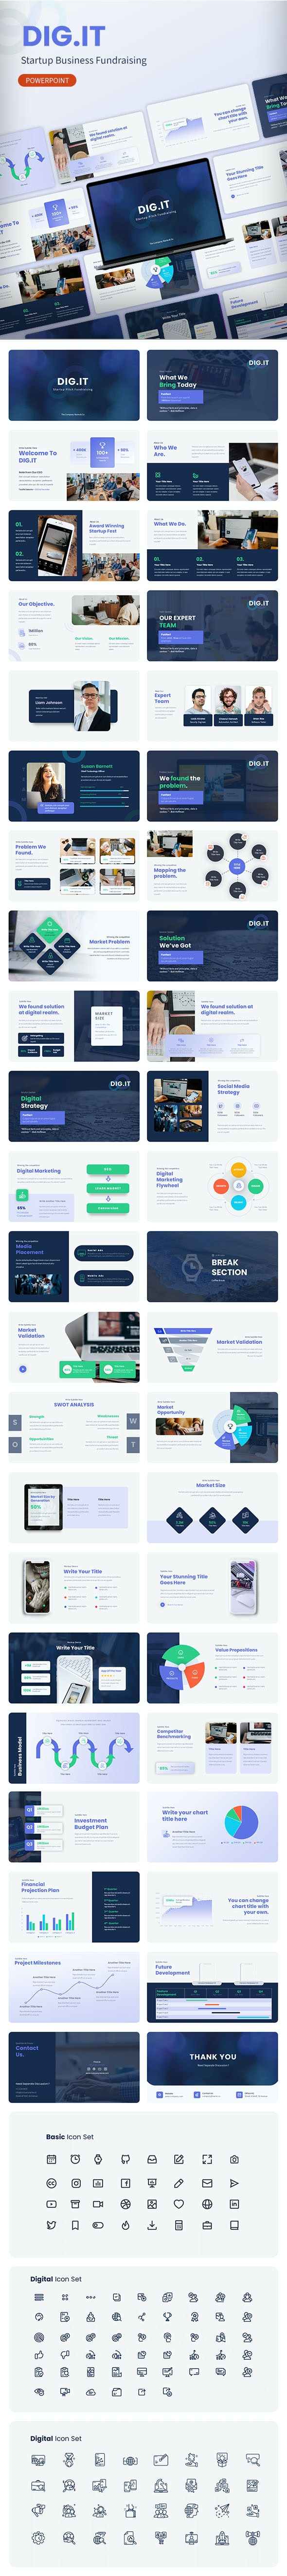 DIGIT – Startup Business Fundraising Powerpoint - Business PowerPoint Templates